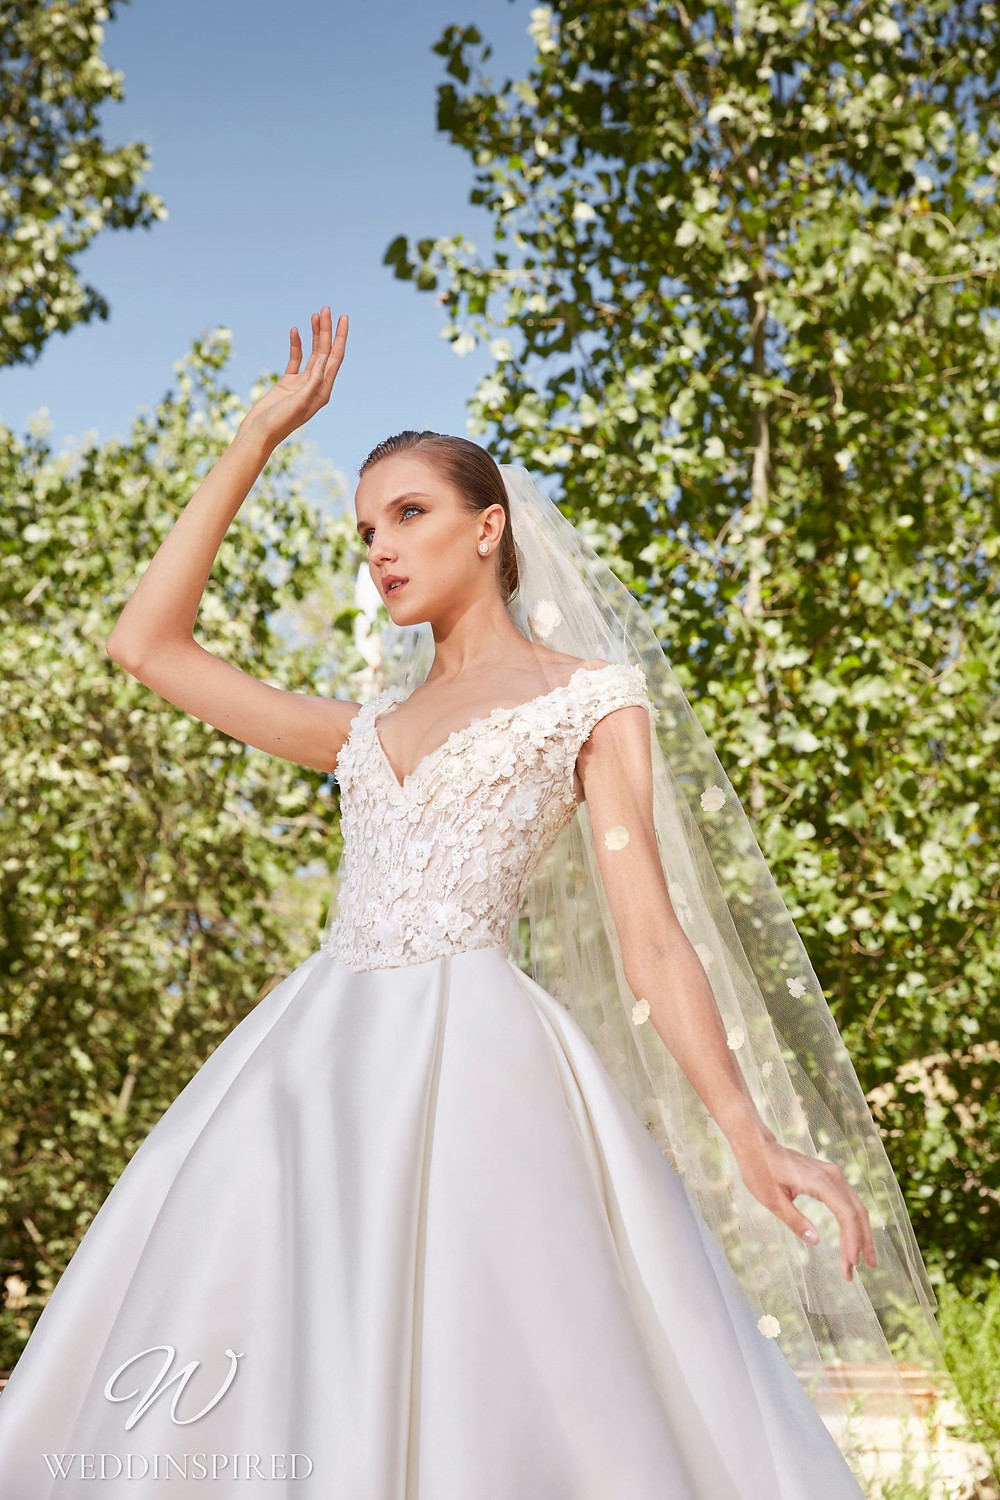 An Elie Saab Spring 2021 satin and lace romantic ball gown wedding dress with a v neck and cap sleeves